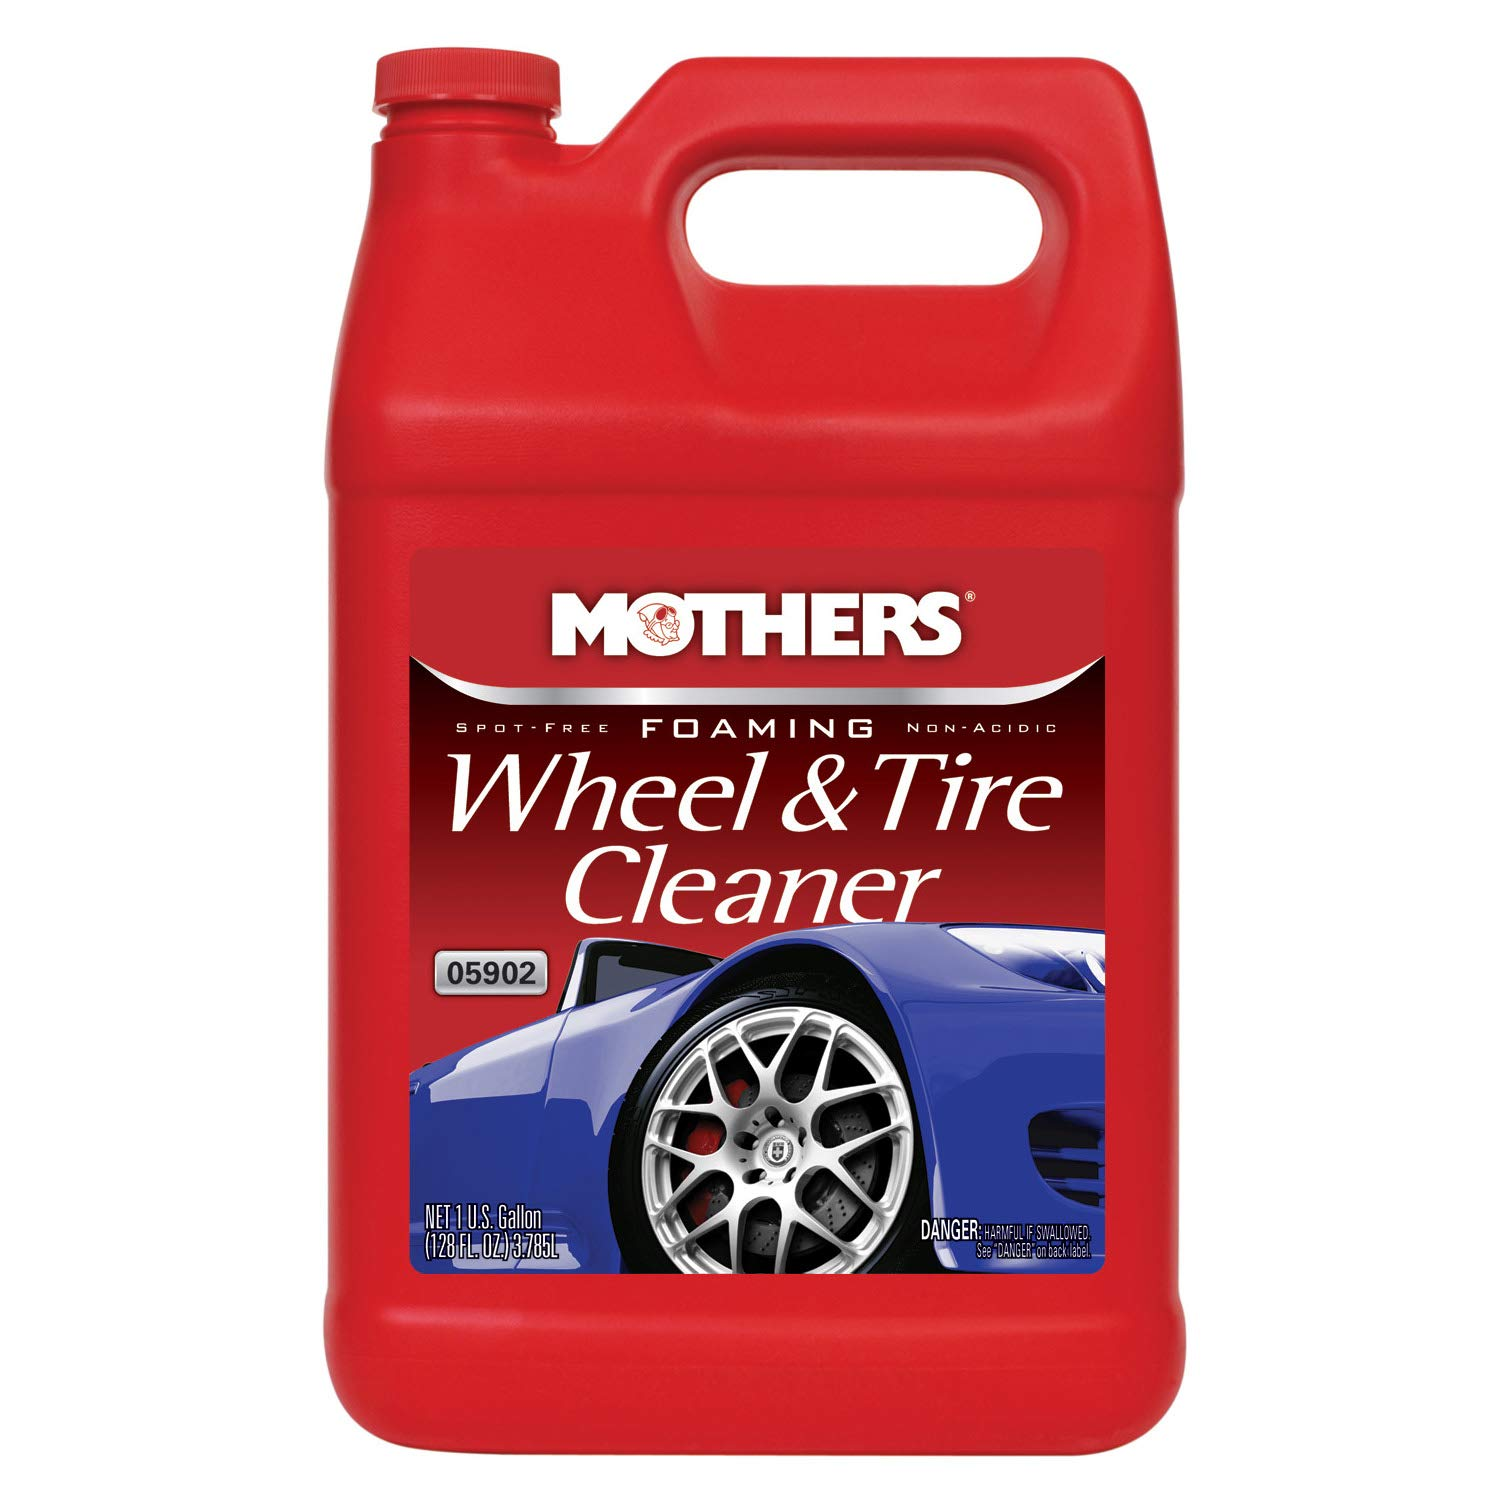 Mothers 05902 Foaming Wheel & Tire Cleaner - 1 Gallon